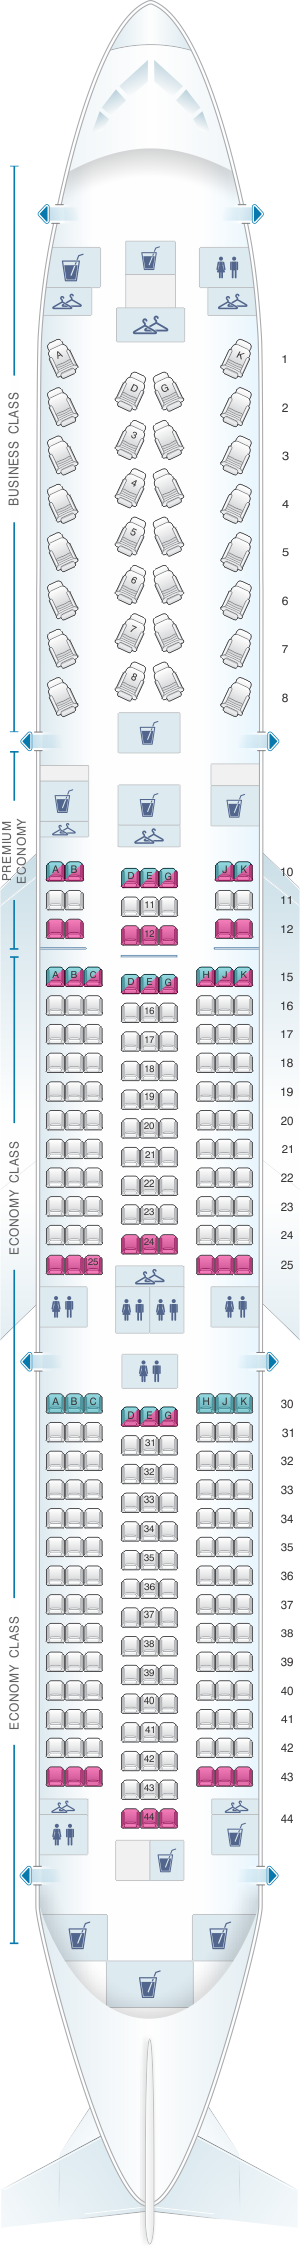 Seat map for Air France Boeing B787-9